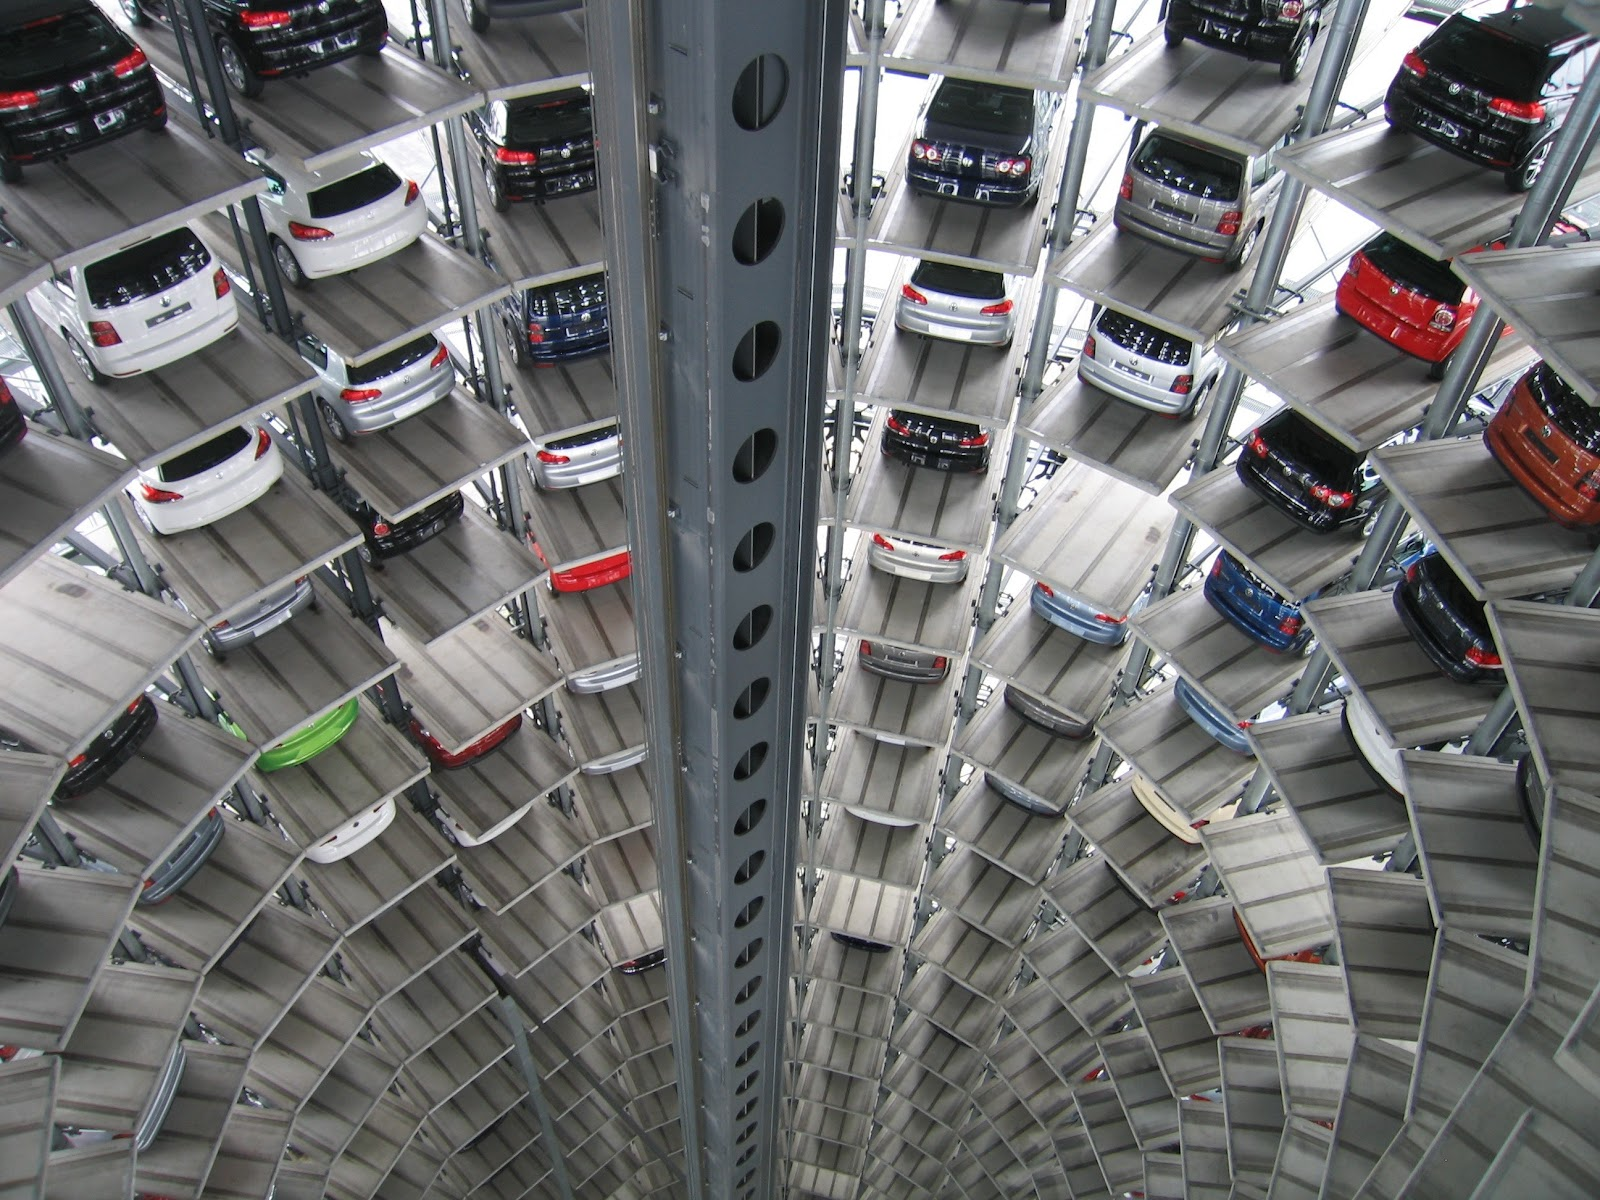 A multi-storey car parking lot.